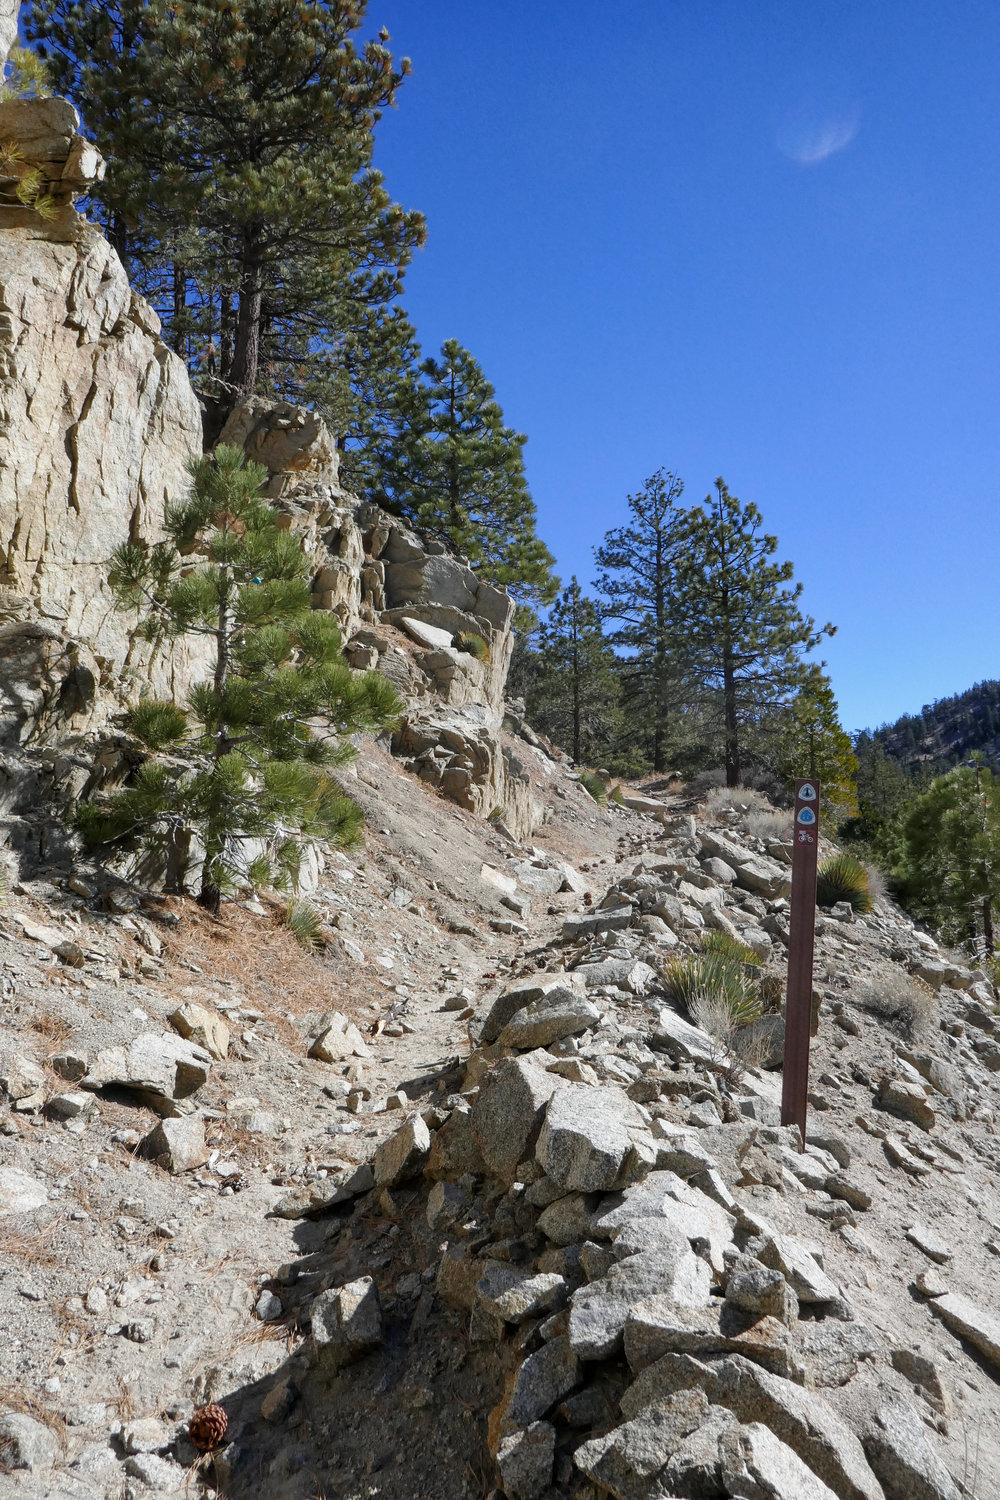 Crossing over Angeles Crest to continue along the PCT/Silver Moccasin Trail.